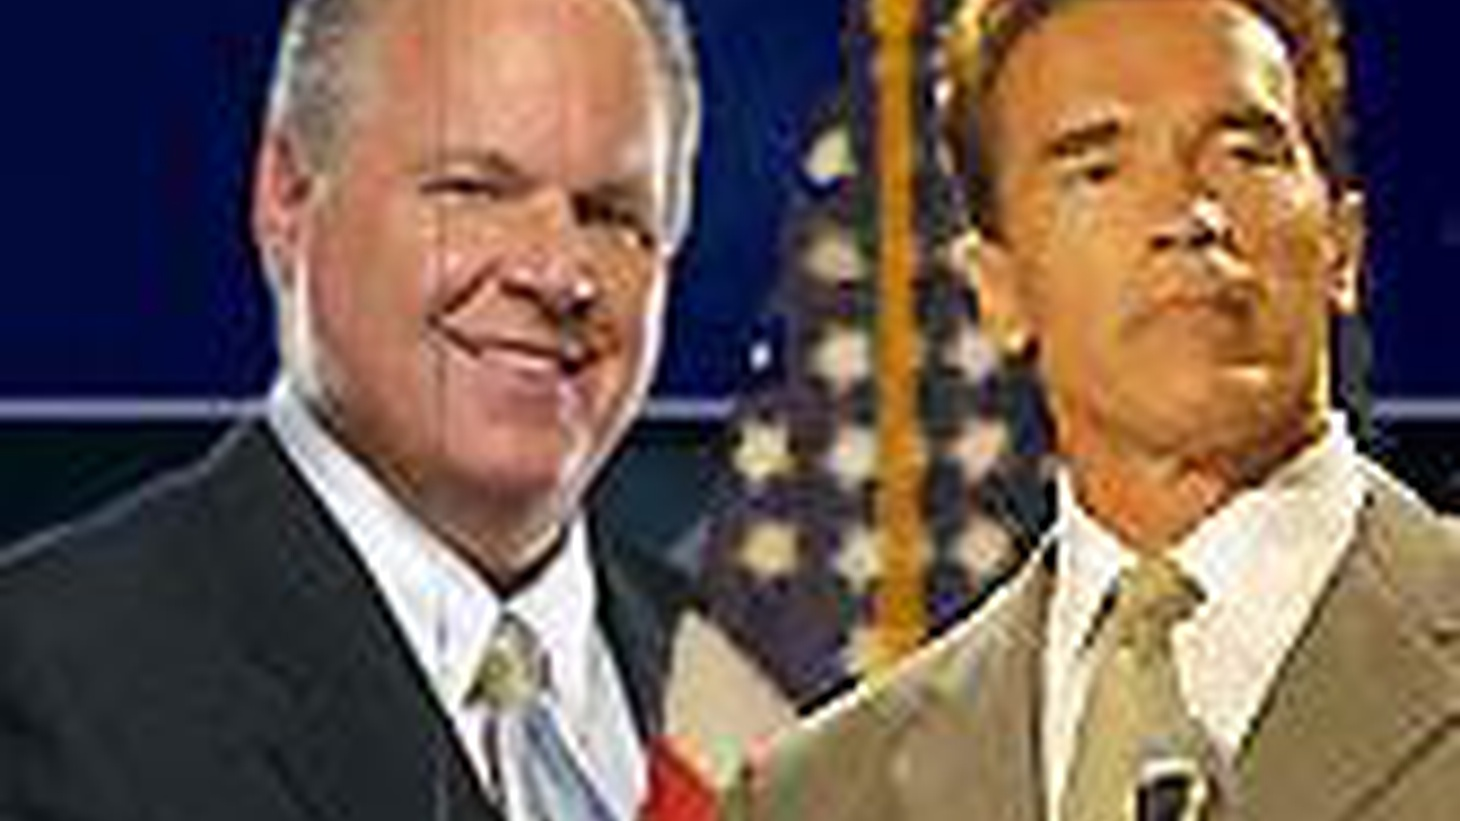 Governor Schwarzenegger went on the Rush Limbaugh program today. Limbaugh still accused him of compromising Republican principals. Is Schwarzenegger a Republican, a Democrat--or something in between? Is ideology a hindrance to governing? Also, the first Persian mayor of an American city, Jimmy Delshad of Beverly Hills.